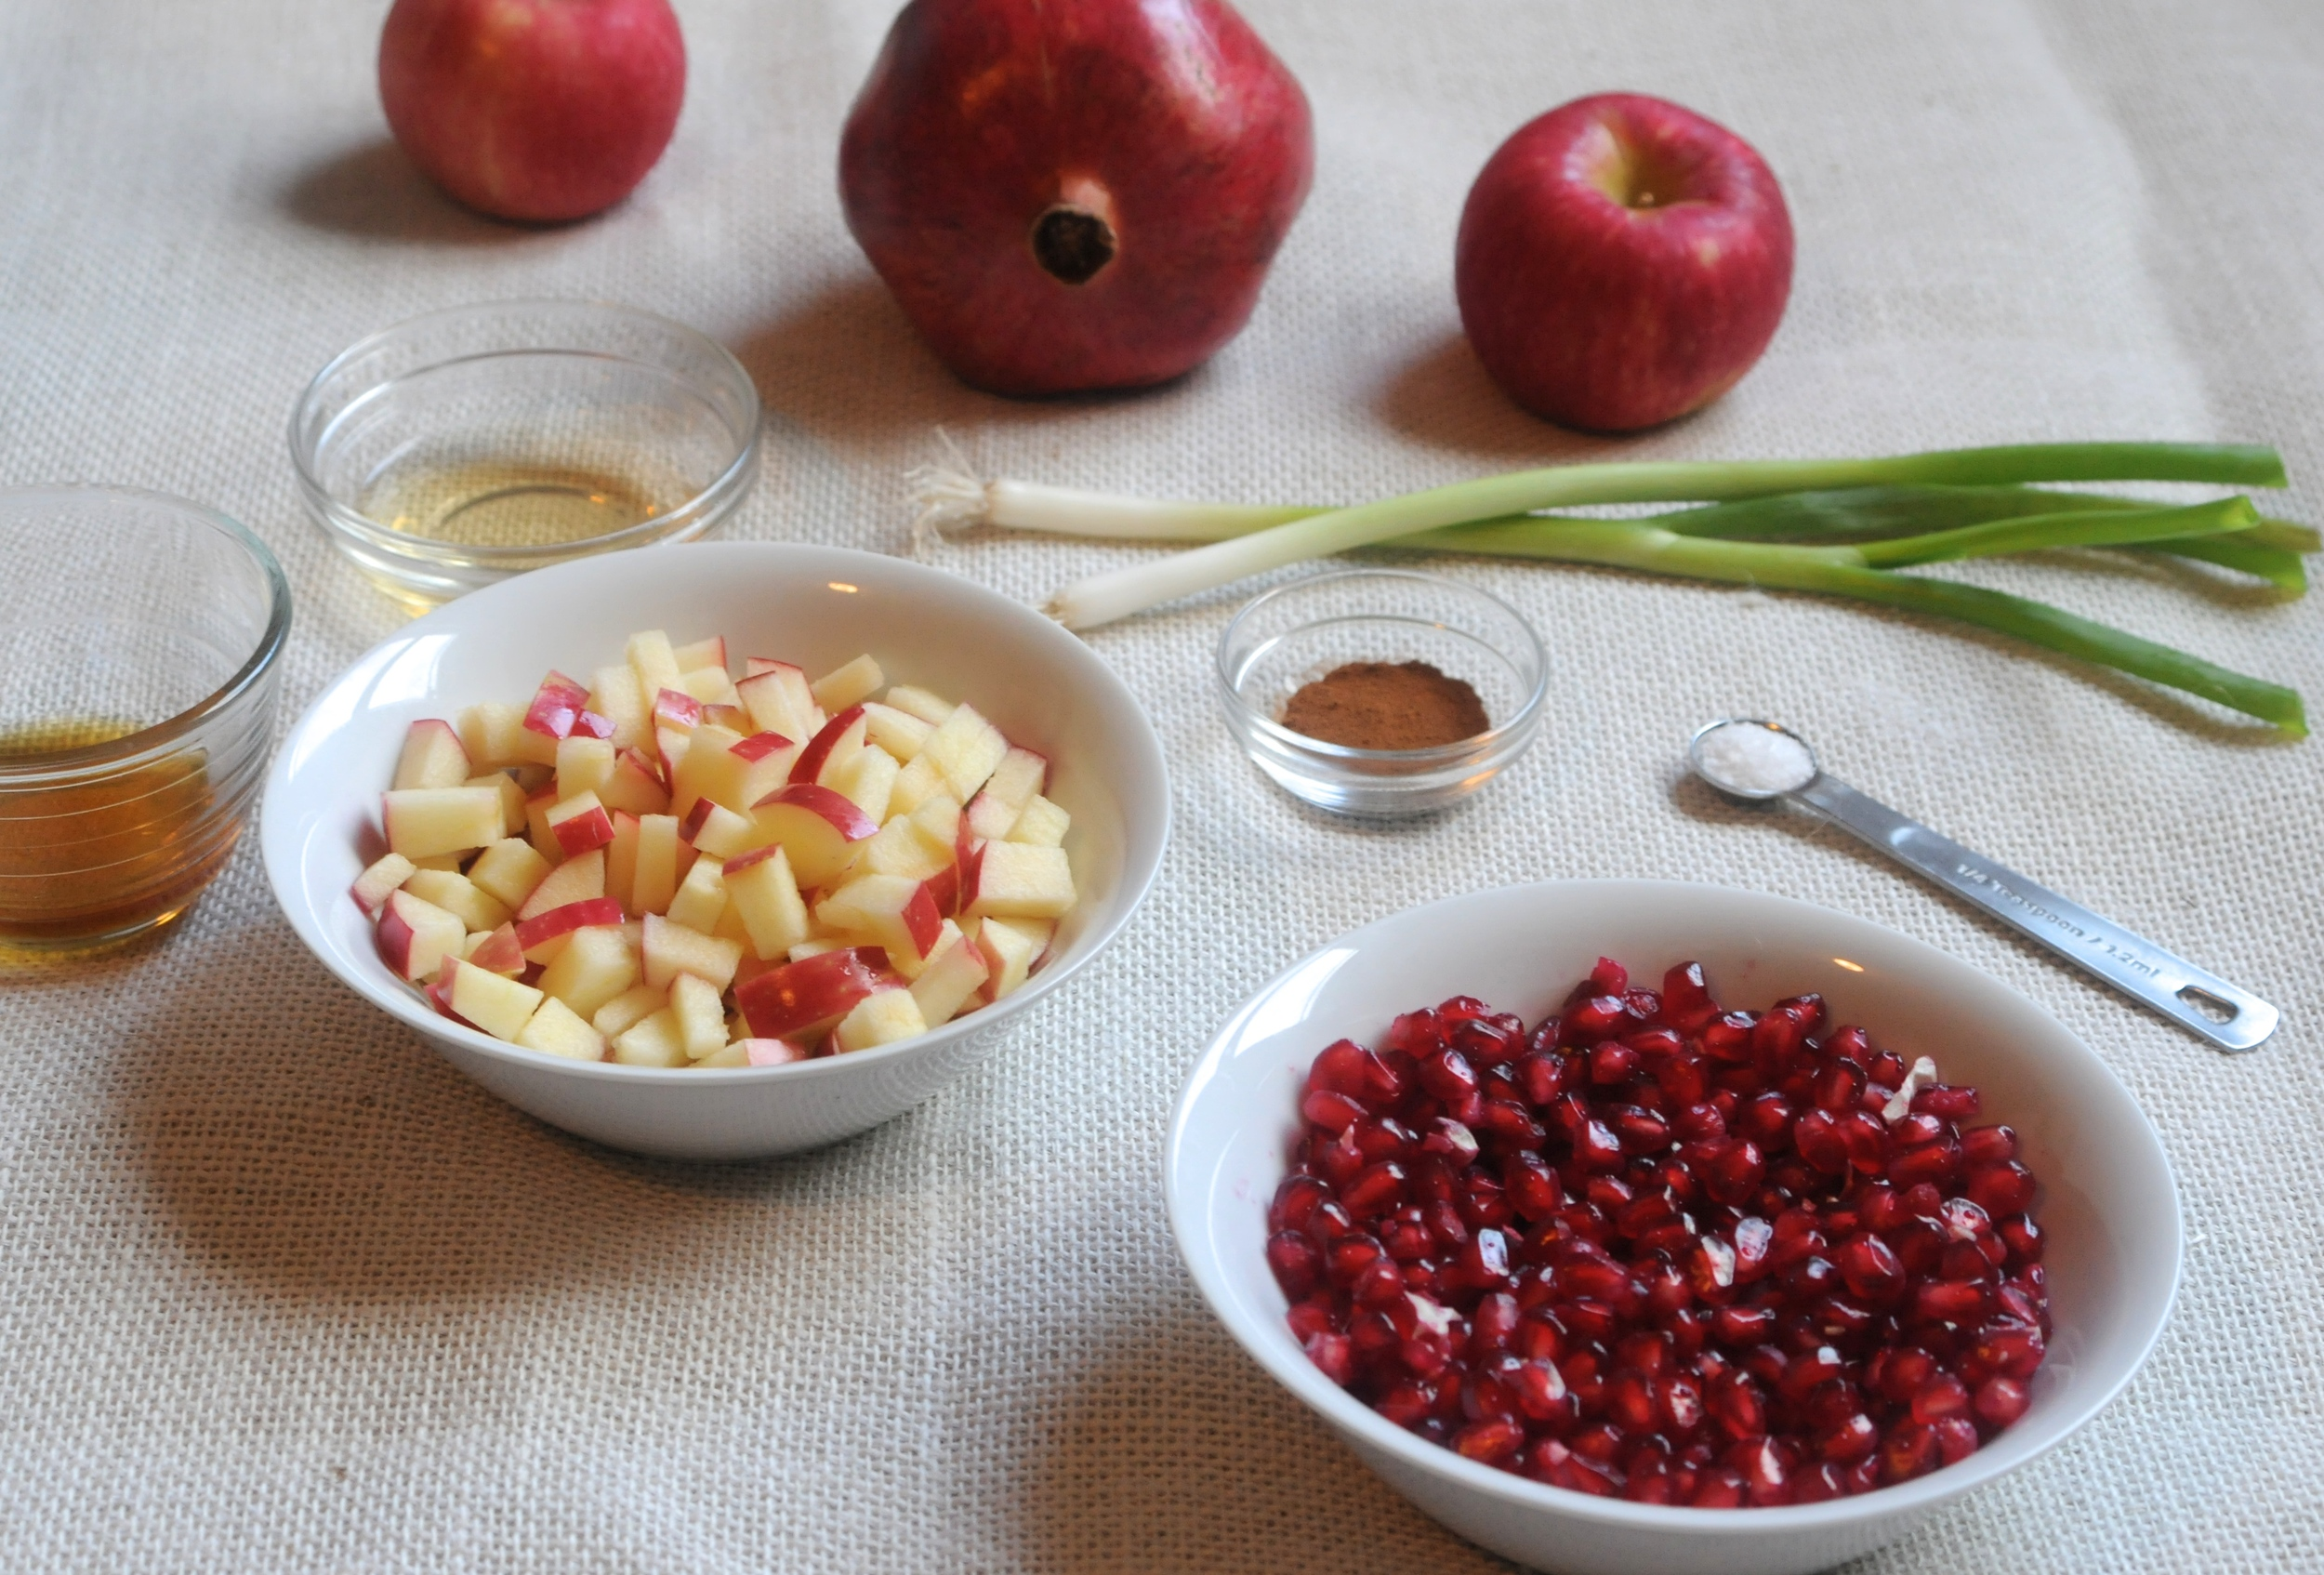 apple cinnamon pomegranate salsa ingredients